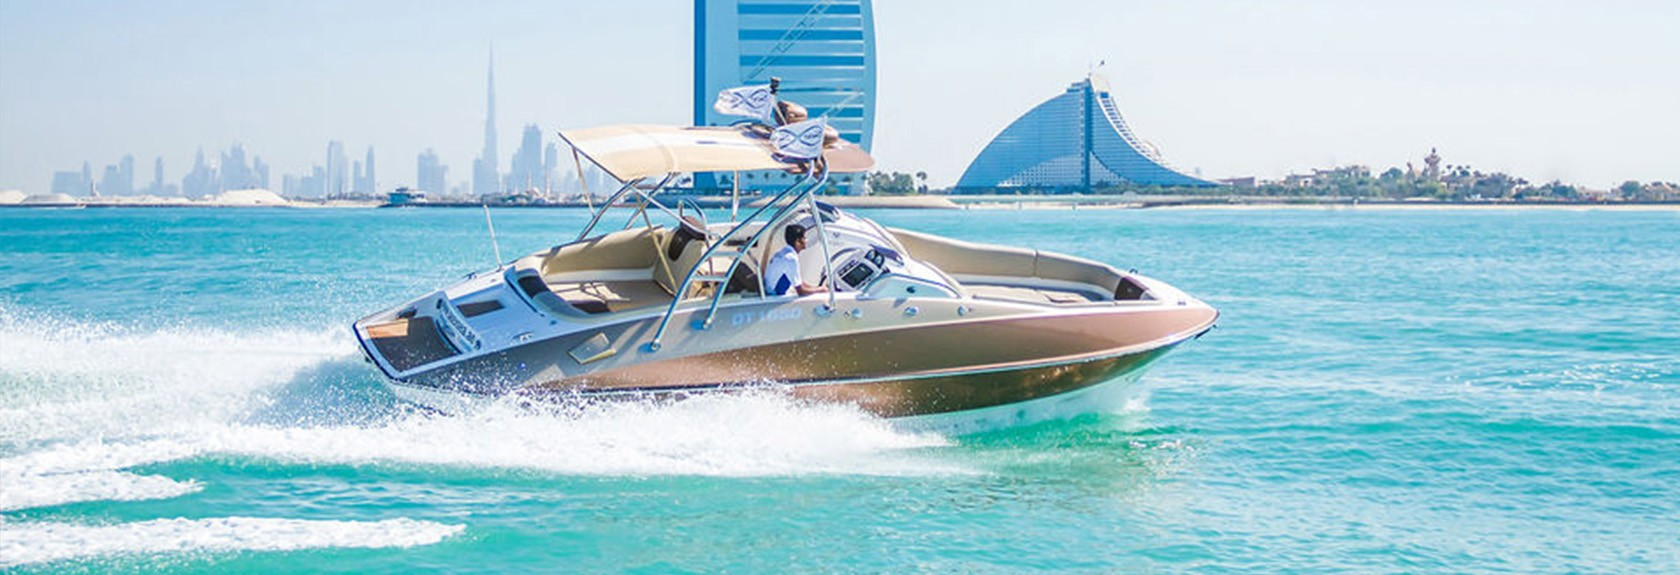 Privé sightseeing tour per luxe boot in Dubai